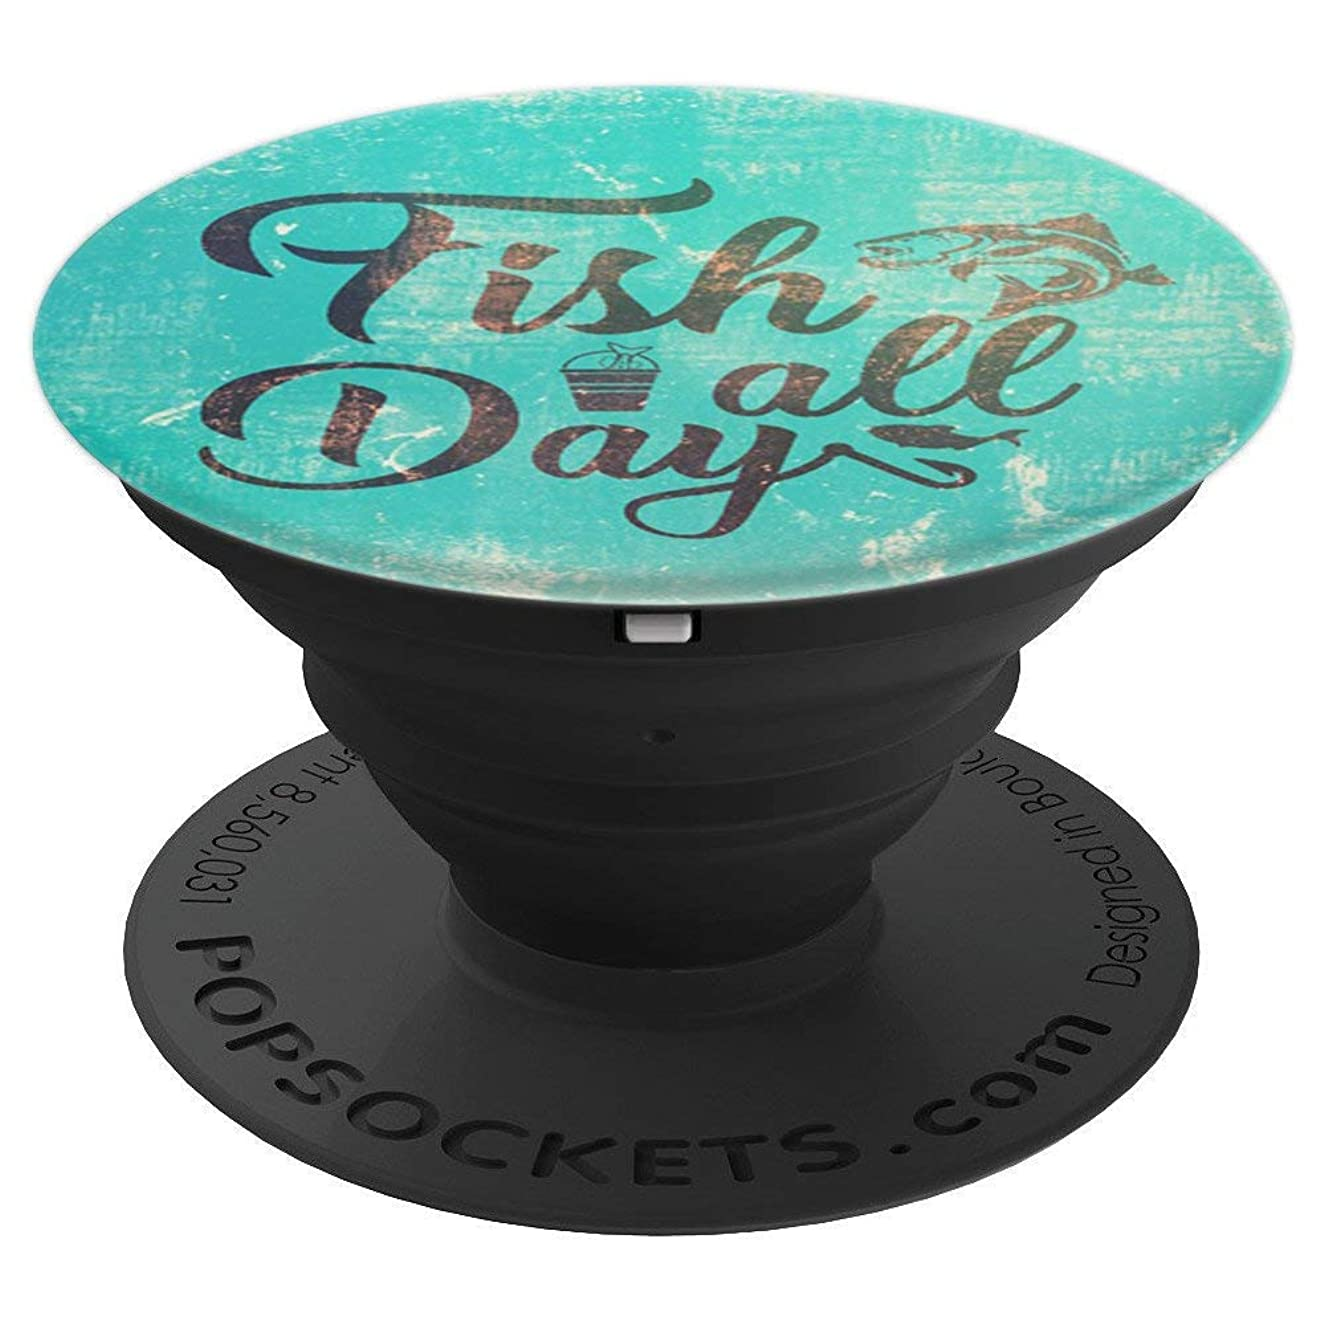 Bass Fishing Design For Men Fish All Day Quote on Turquoise - PopSockets Grip and Stand for Phones and Tablets